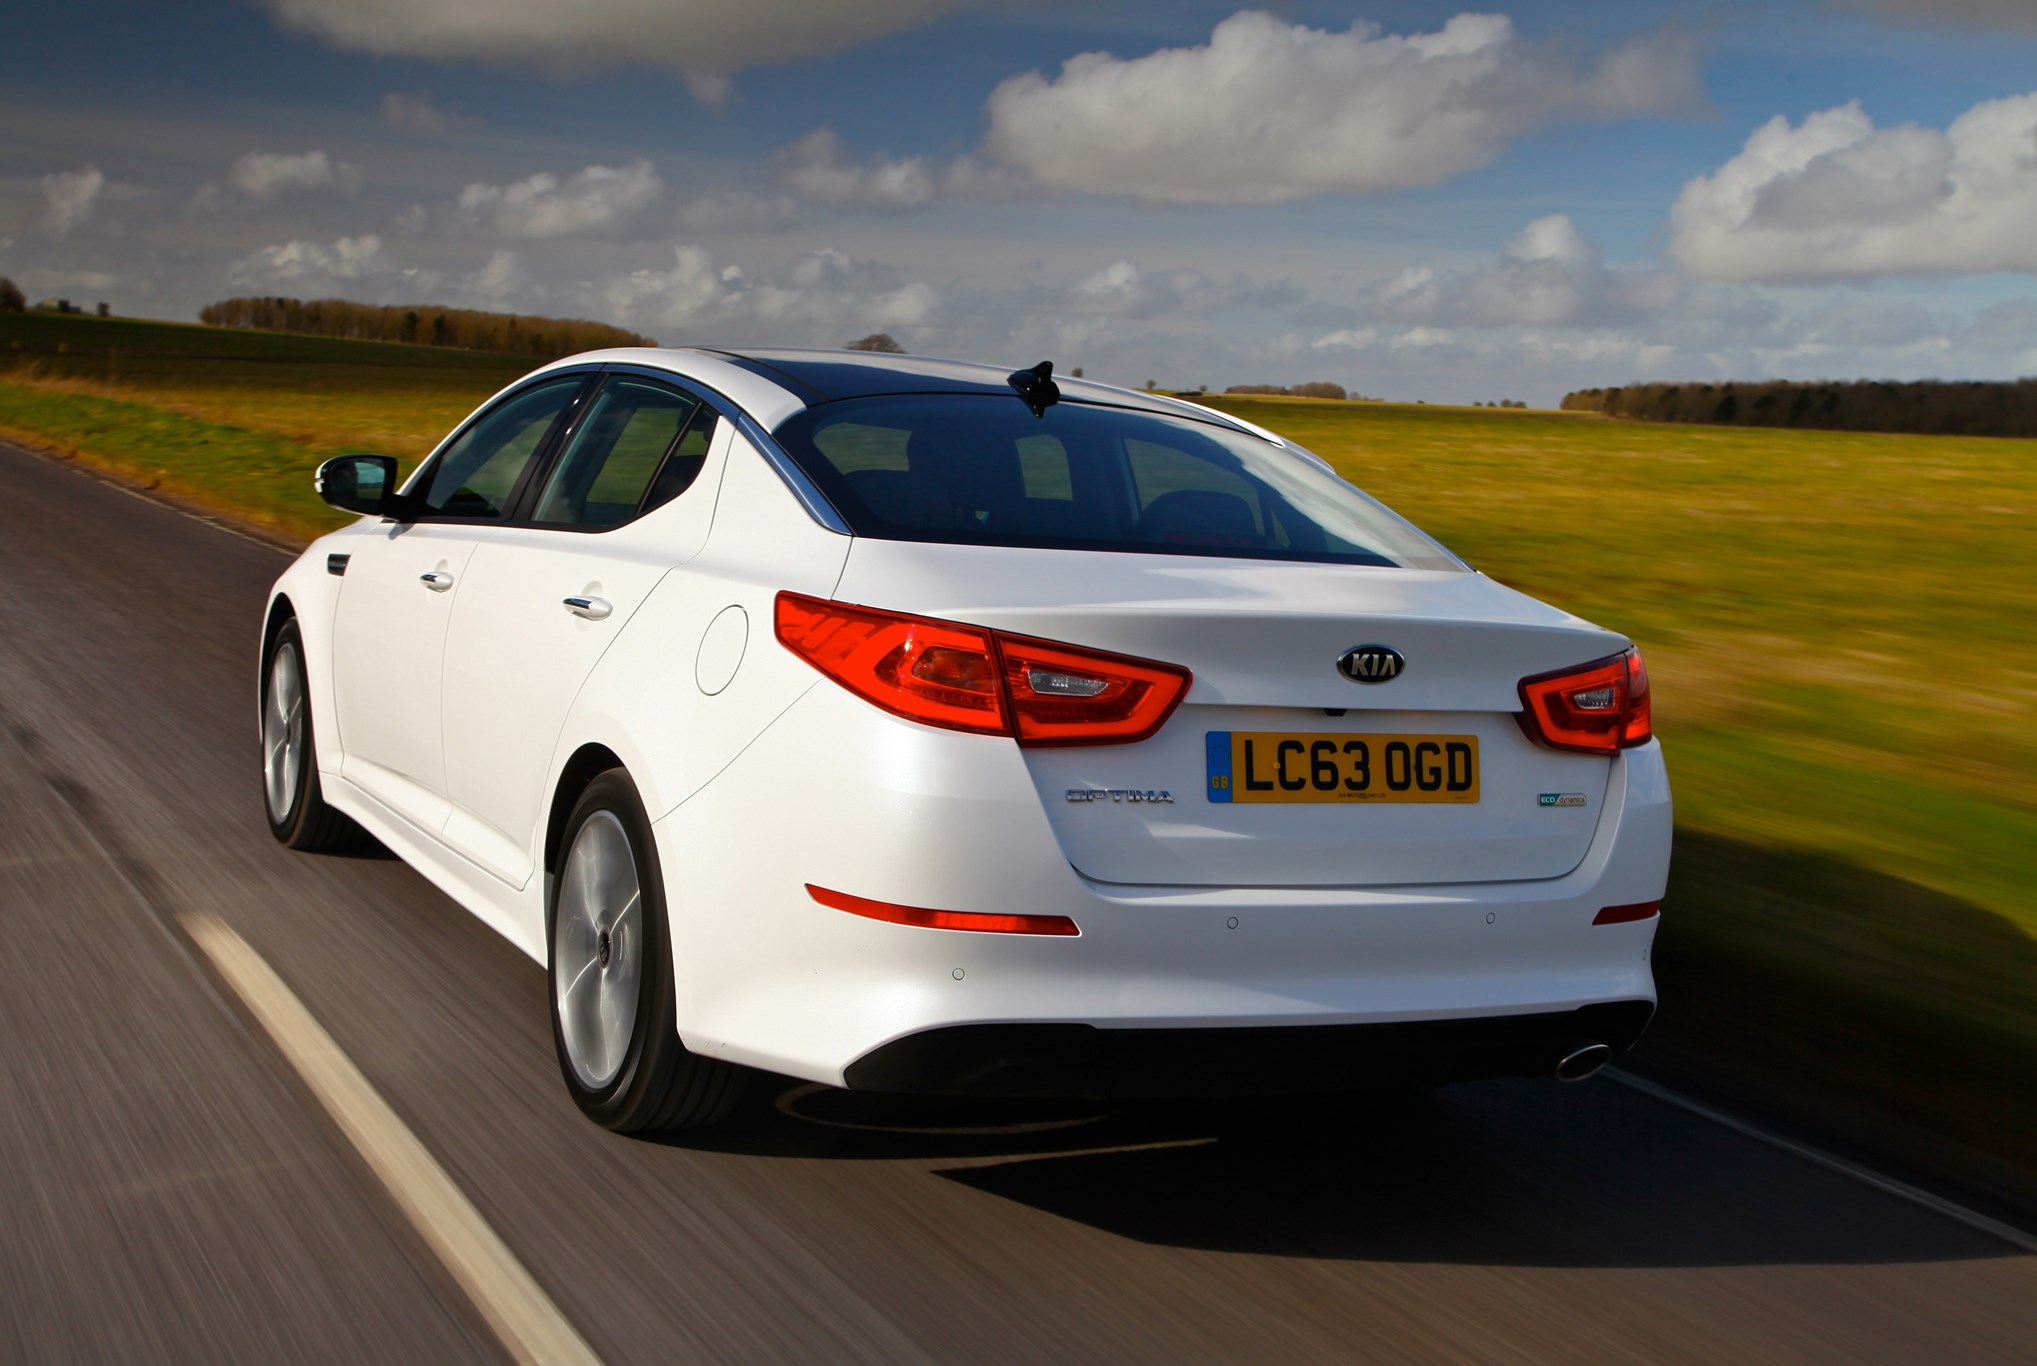 Kia Optima Information Everything You Need To Know If Own It Are Thinking Of Ing One Or Just Want Find Out More About The Saloon